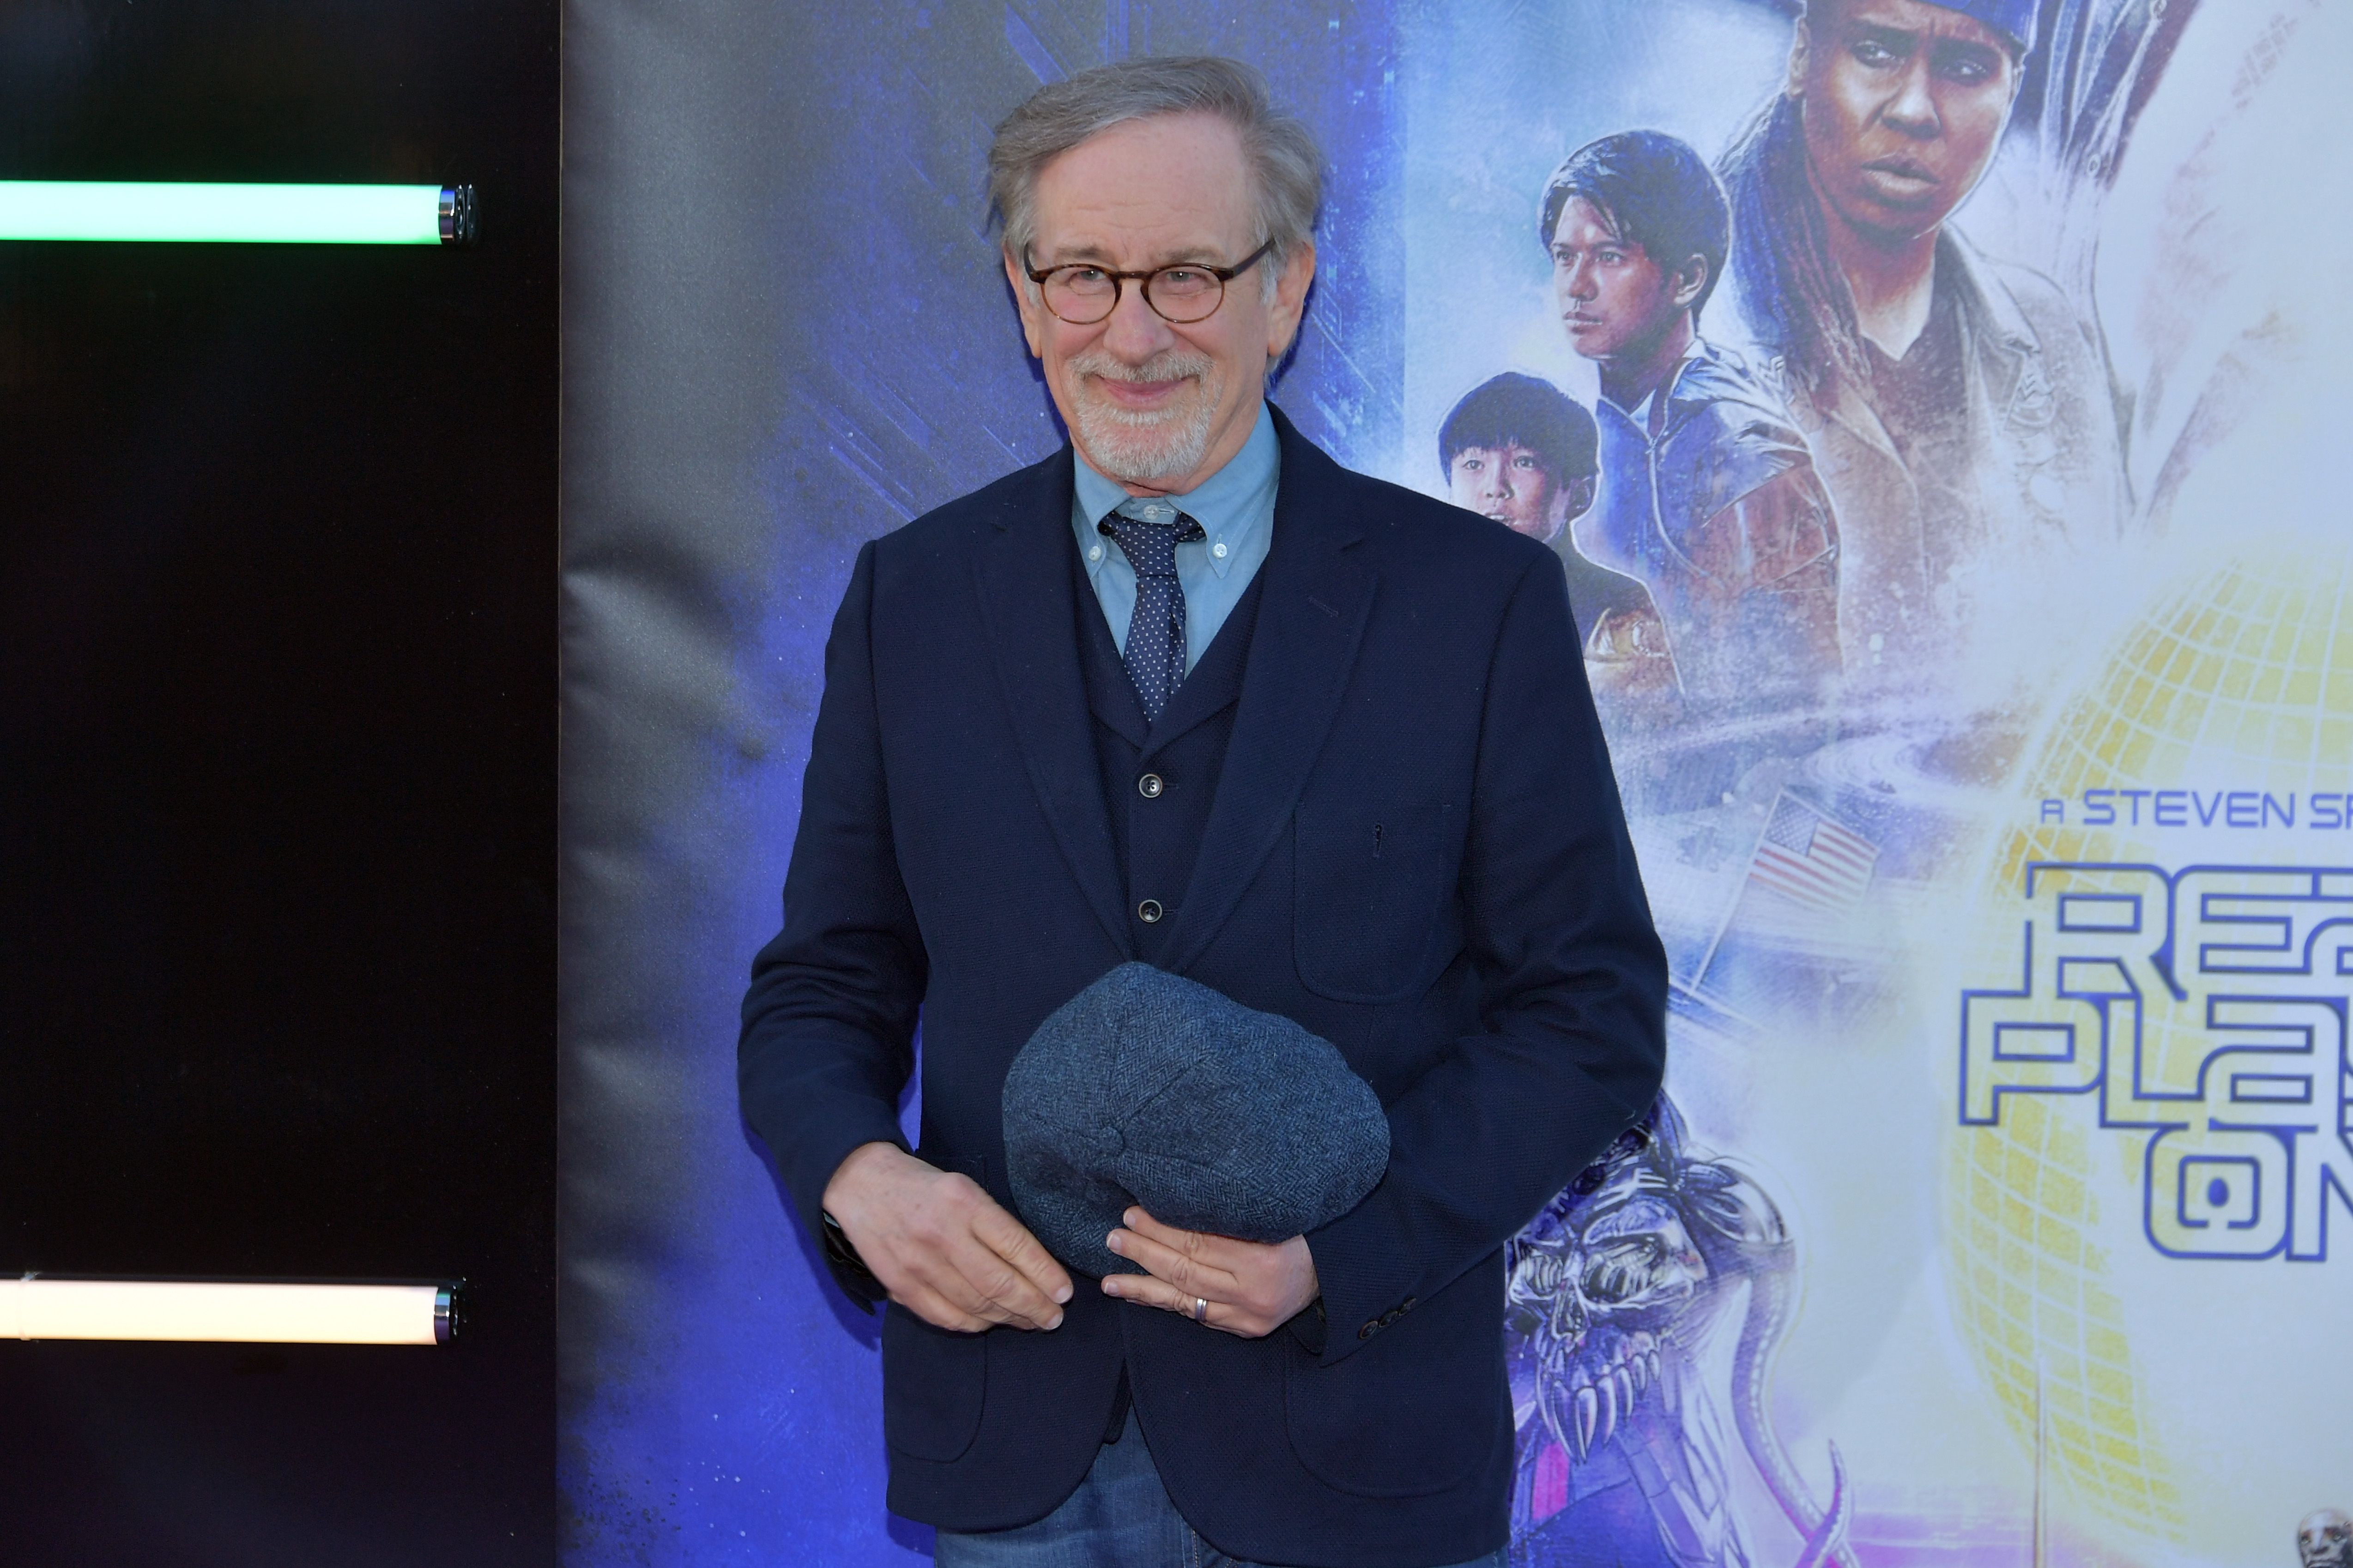 """Steven Spielberg at the premiere of """"Ready Player One"""" at Dolby Theatre on March 26, 2018 